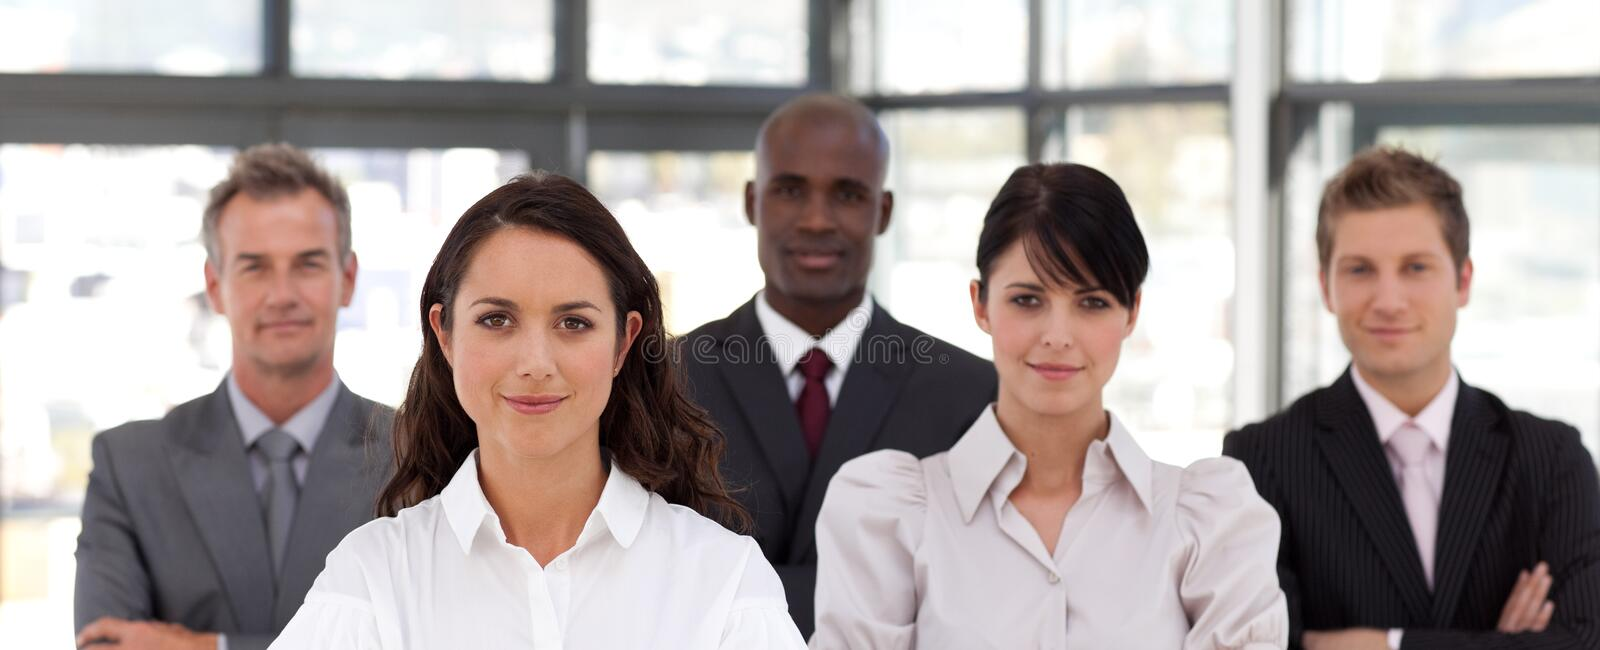 Confident Business woman leading a team stock image